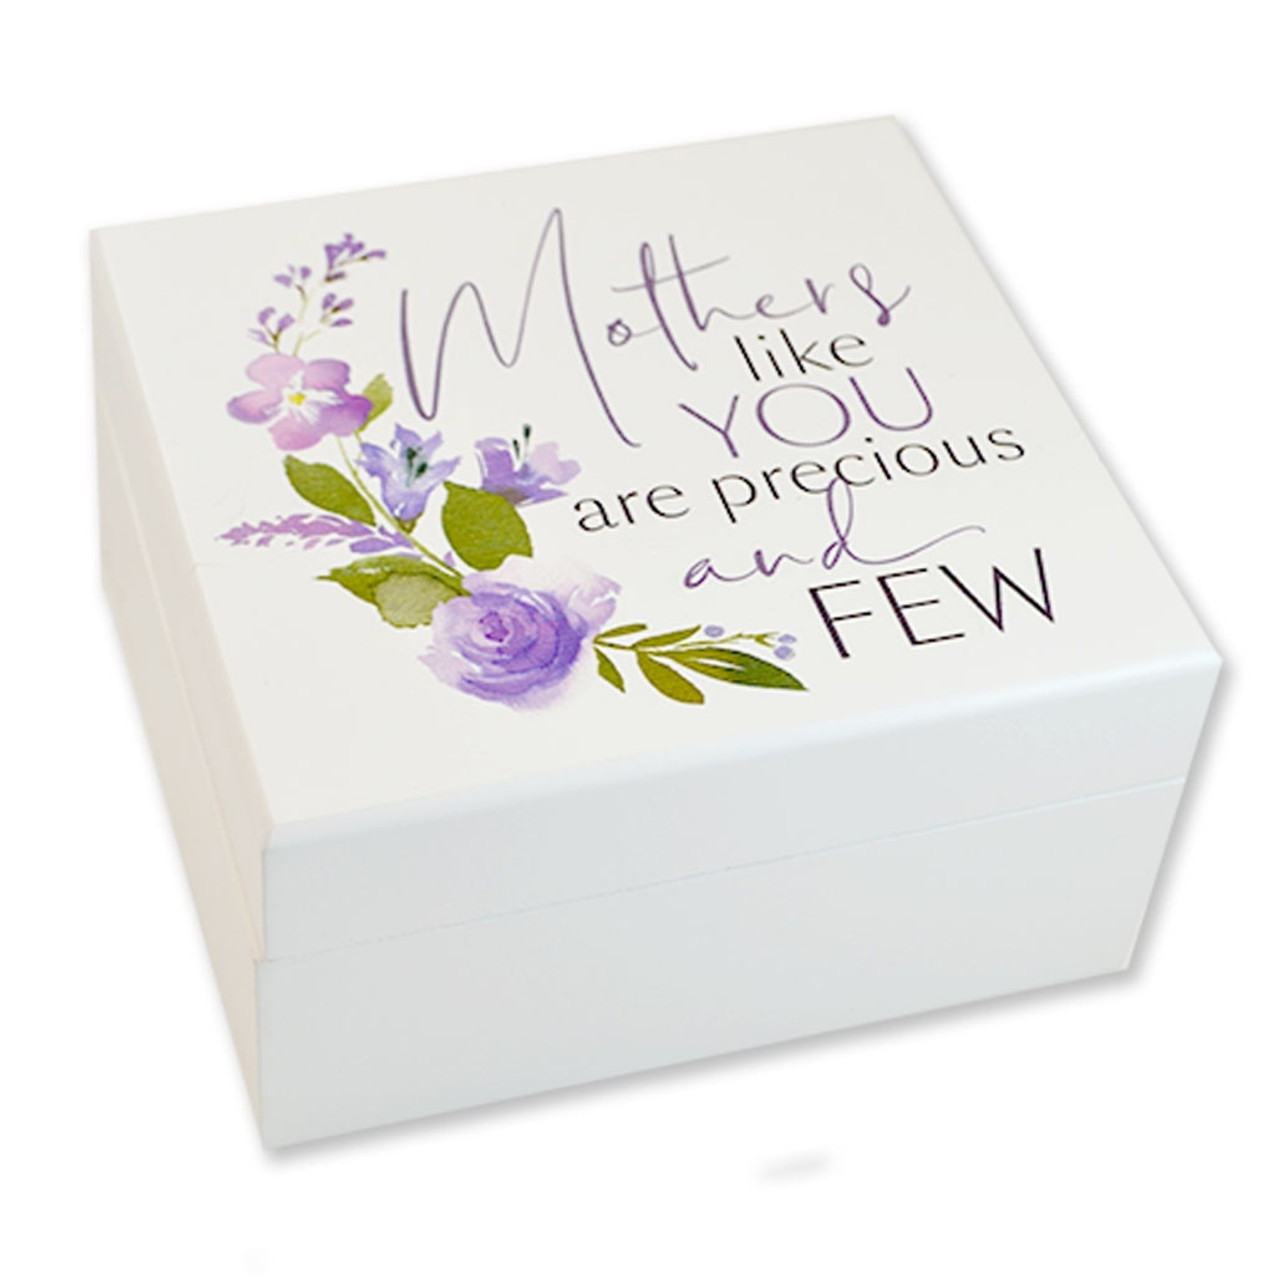 Jewelry Boxes - Sold Separately